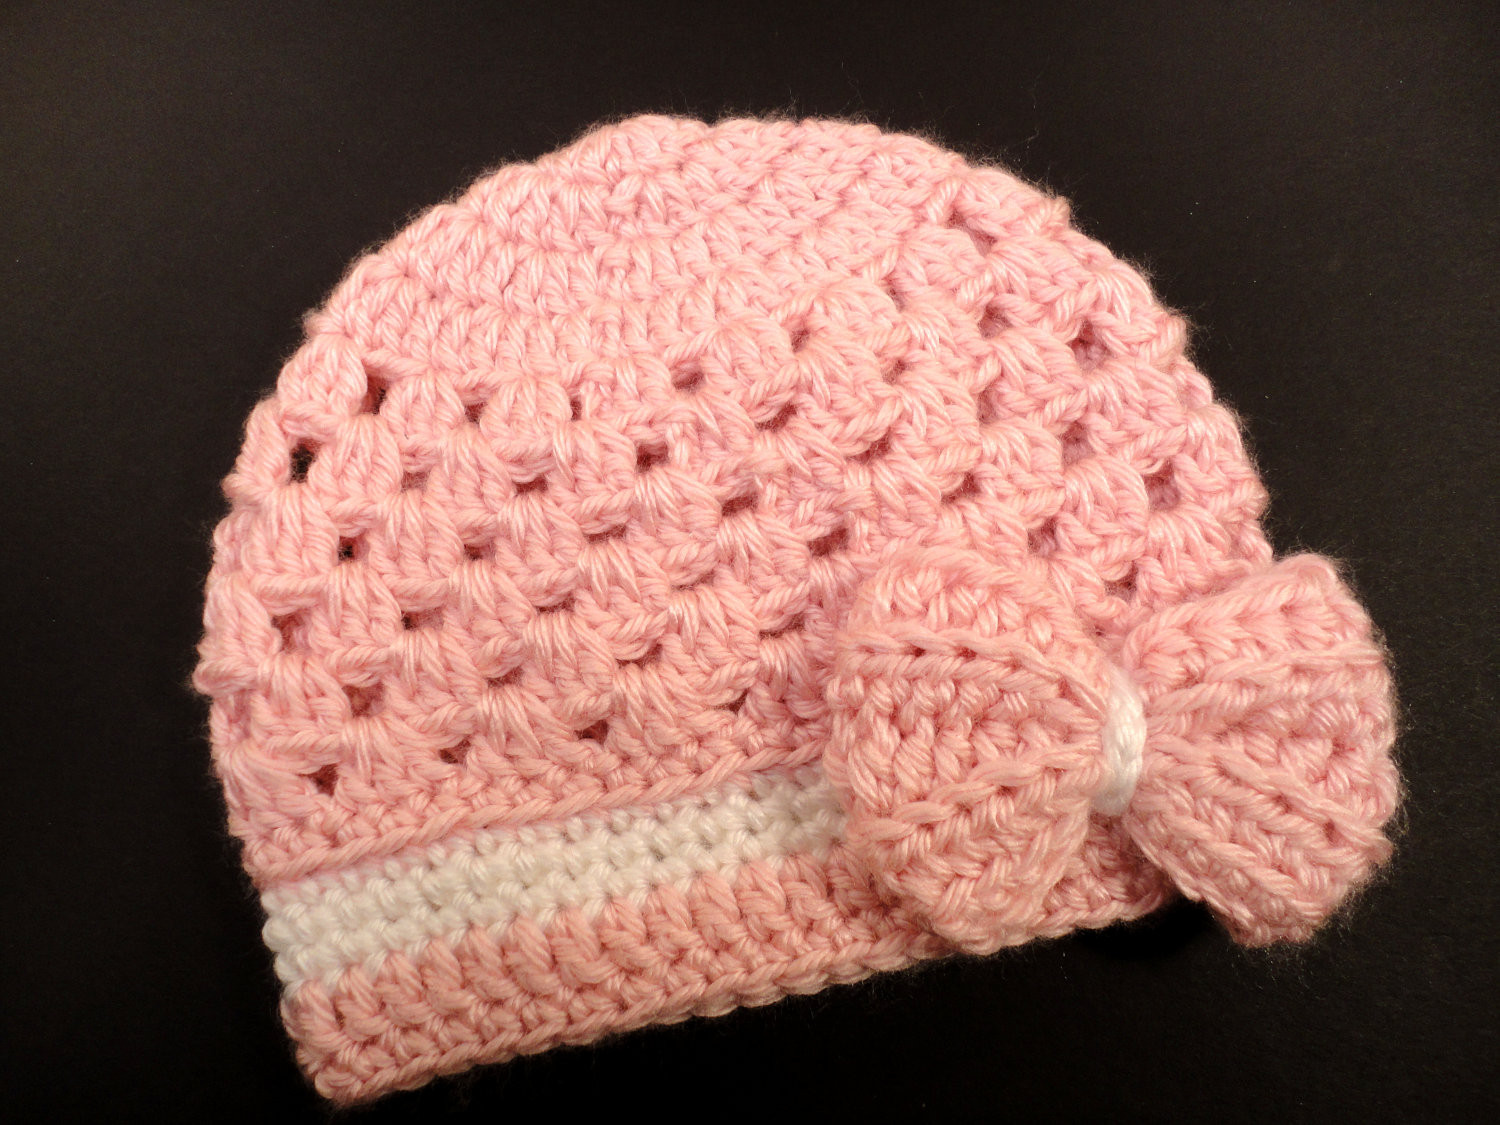 Free Crochet Baby Patterns New Free Crochet Baby Hats Patterns for Beginners Of Delightful 49 Ideas Free Crochet Baby Patterns